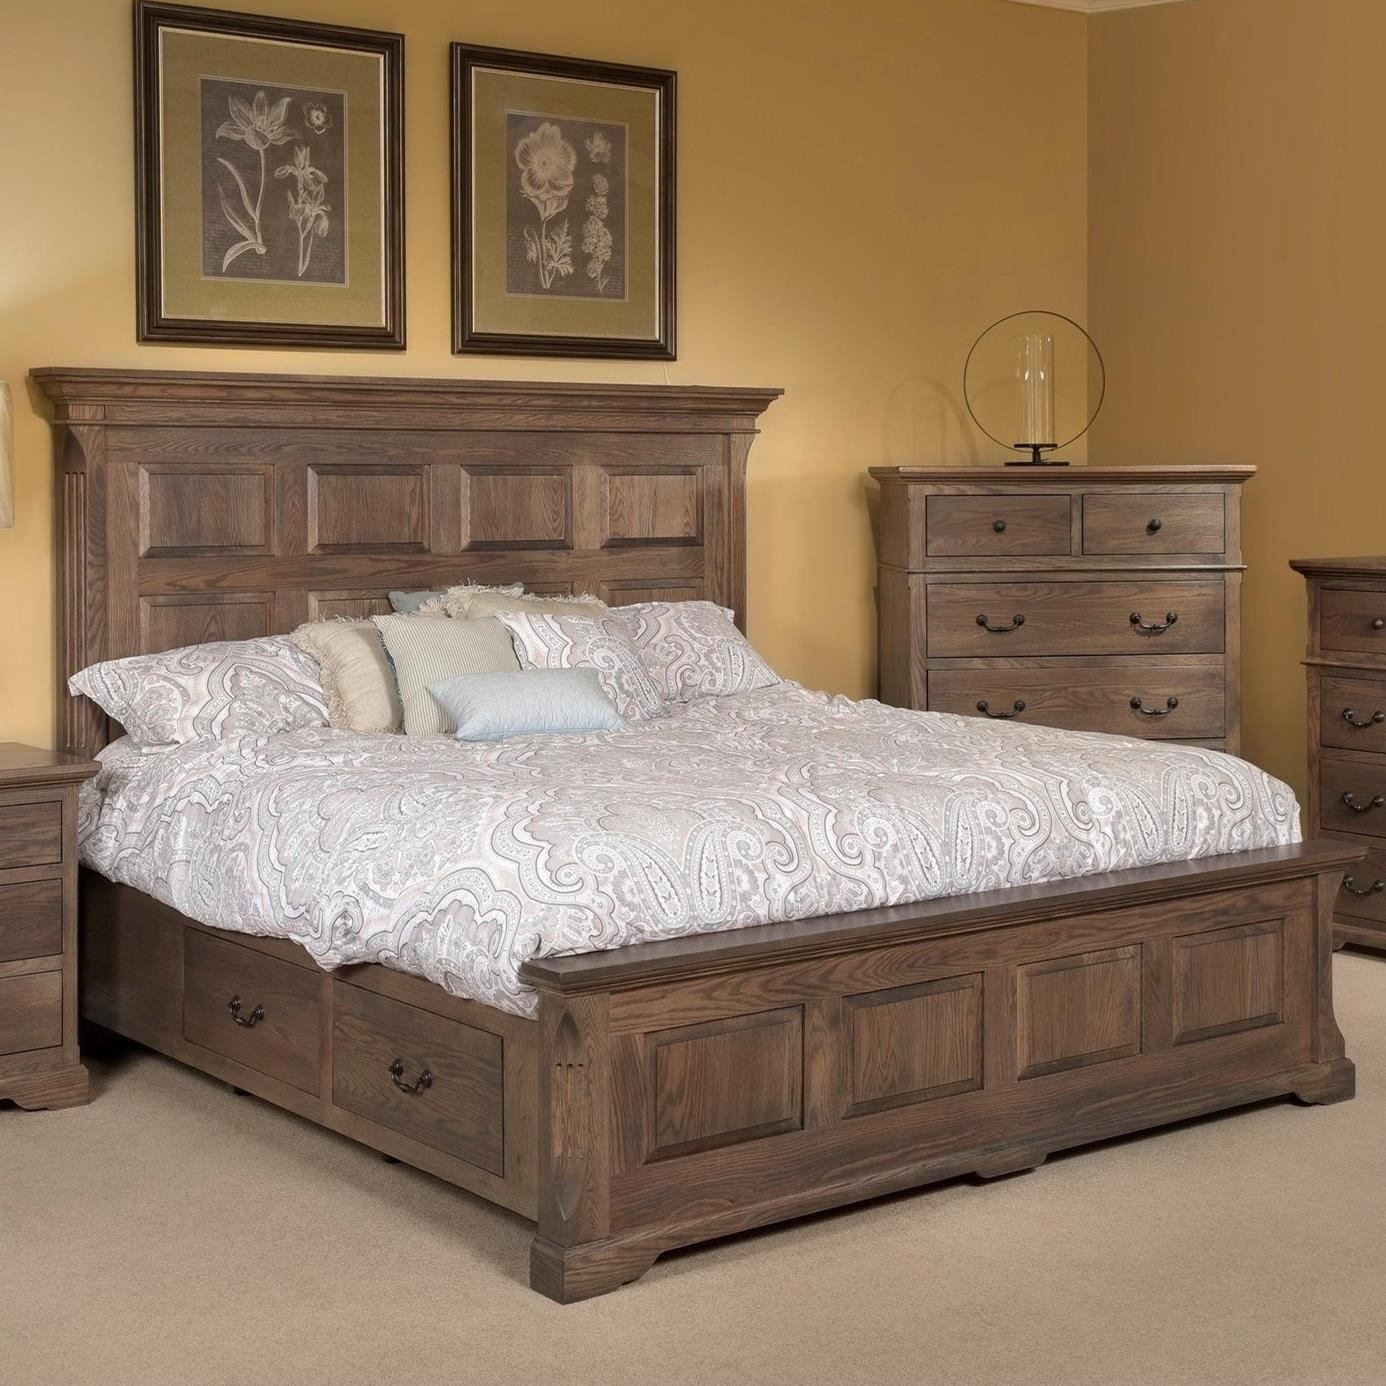 Palettes By Winesburg Longmeadow Traditional King Size